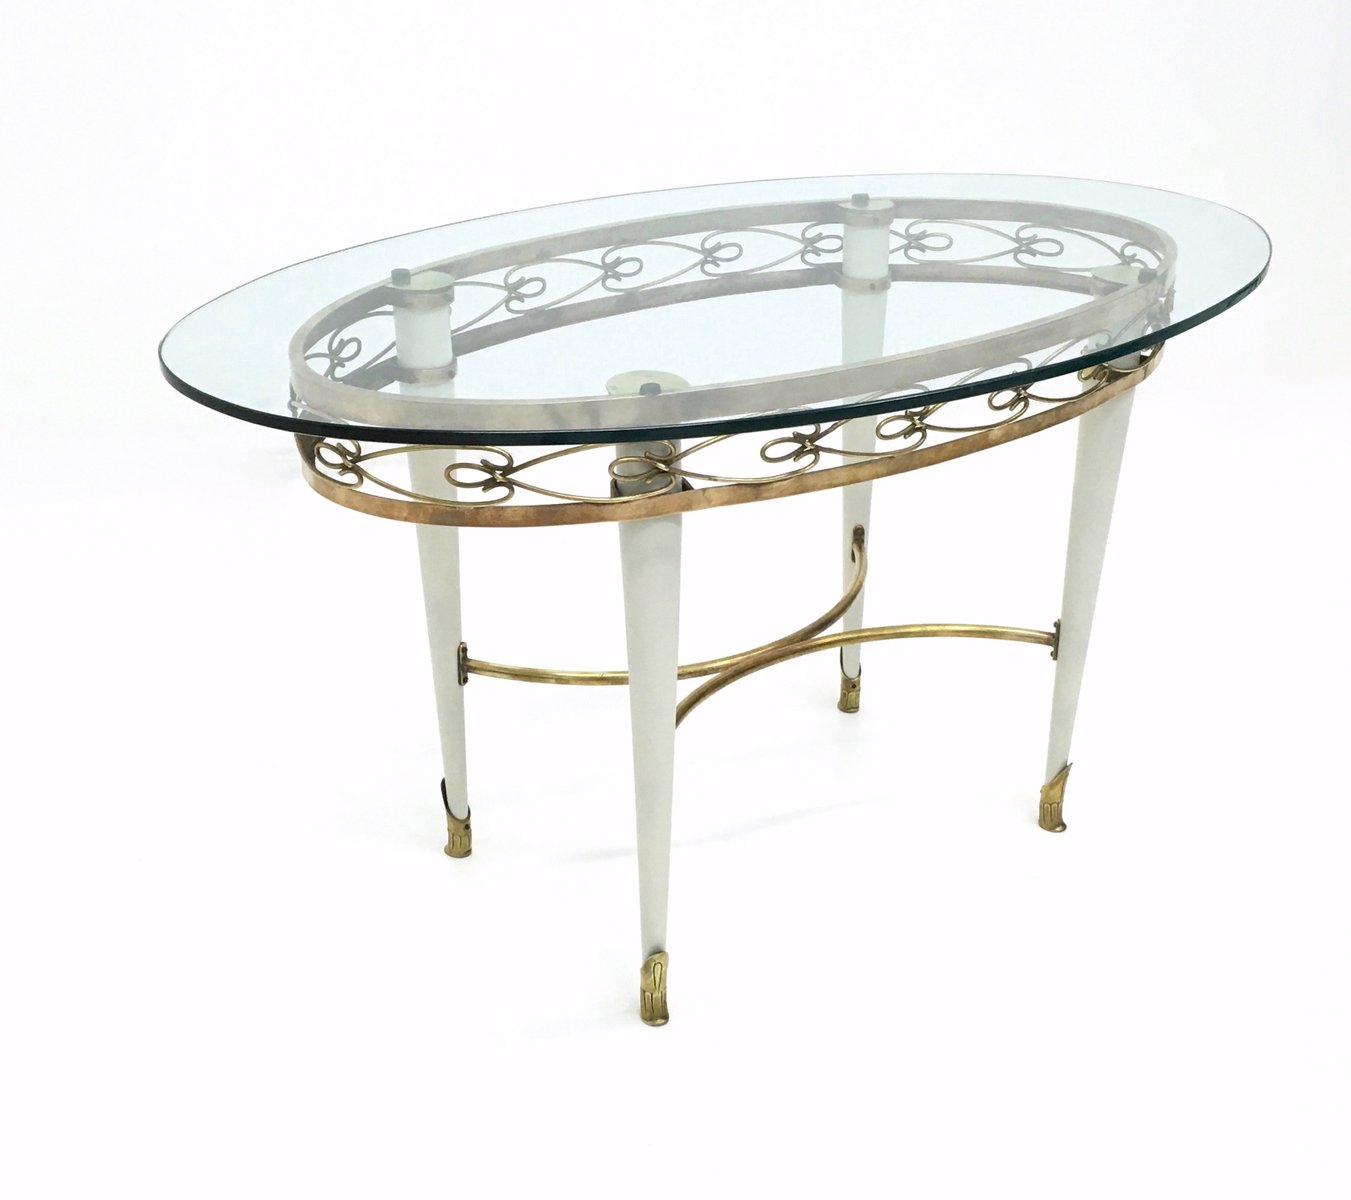 Oval Italian Glass And Brass Coffee Table 1950s For Sale At Pamono